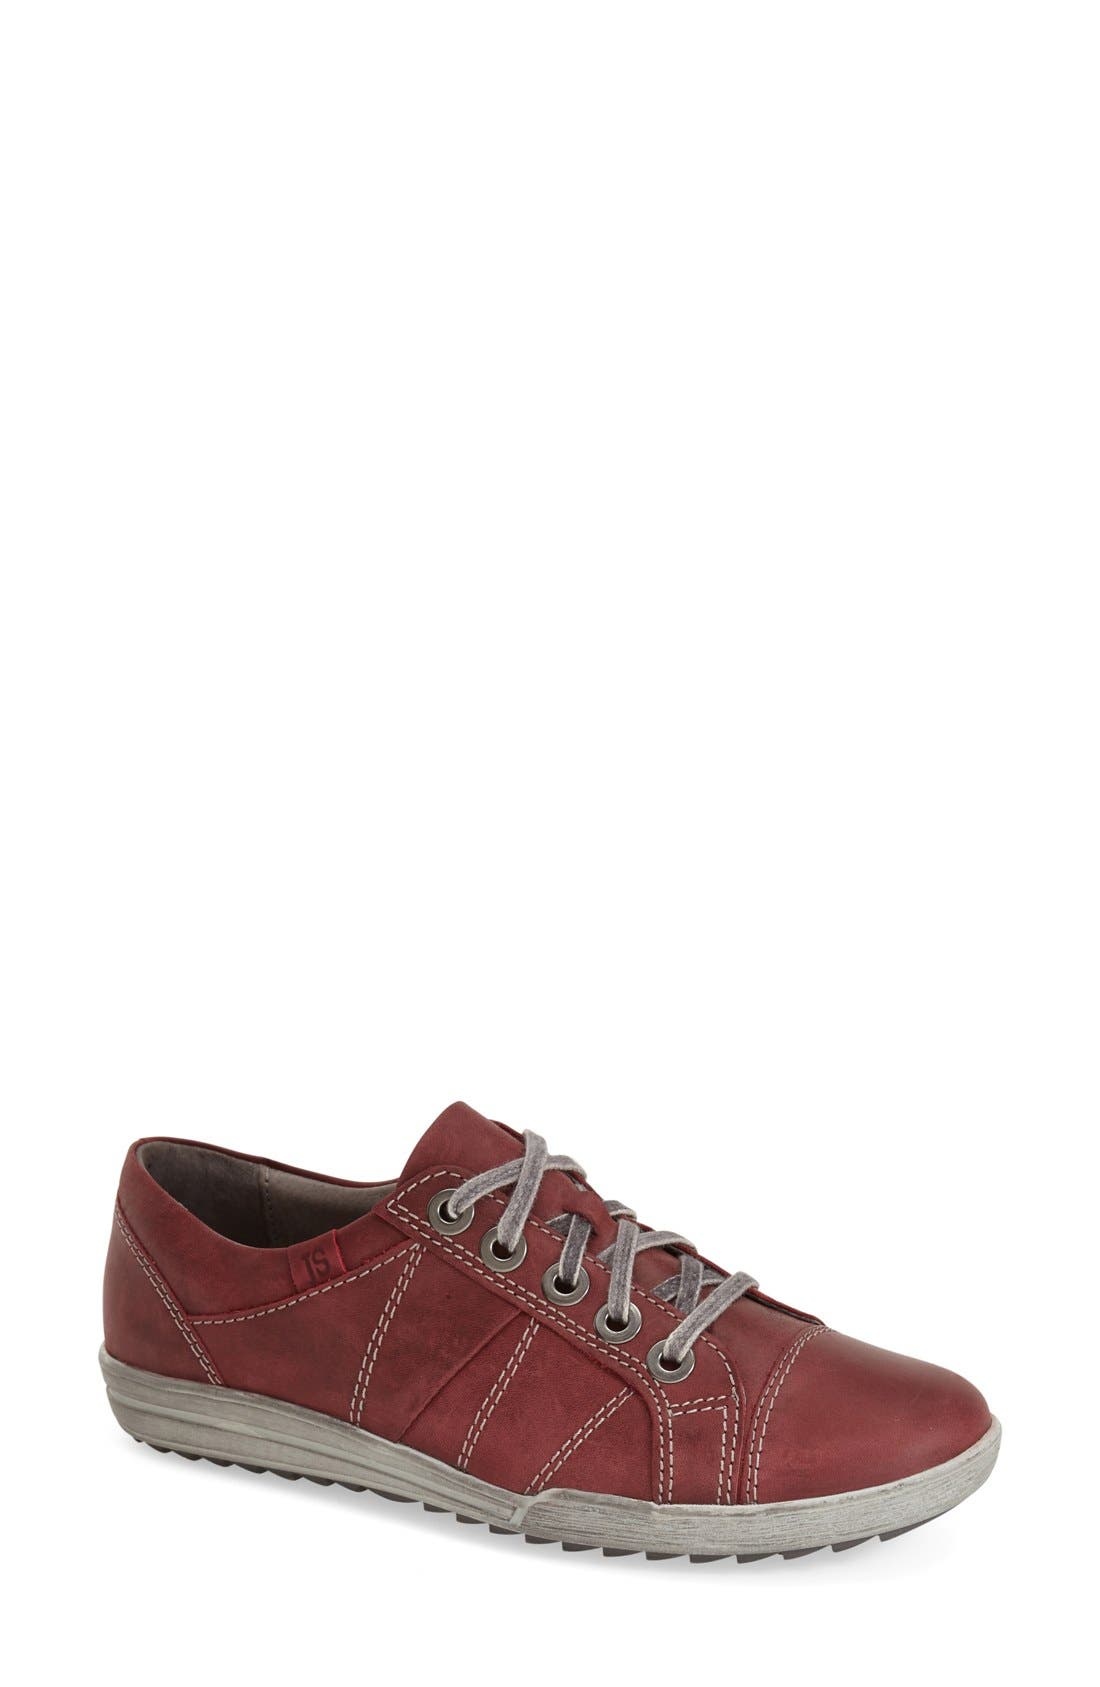 'Dany 05' Leather Sneaker,                             Main thumbnail 9, color,